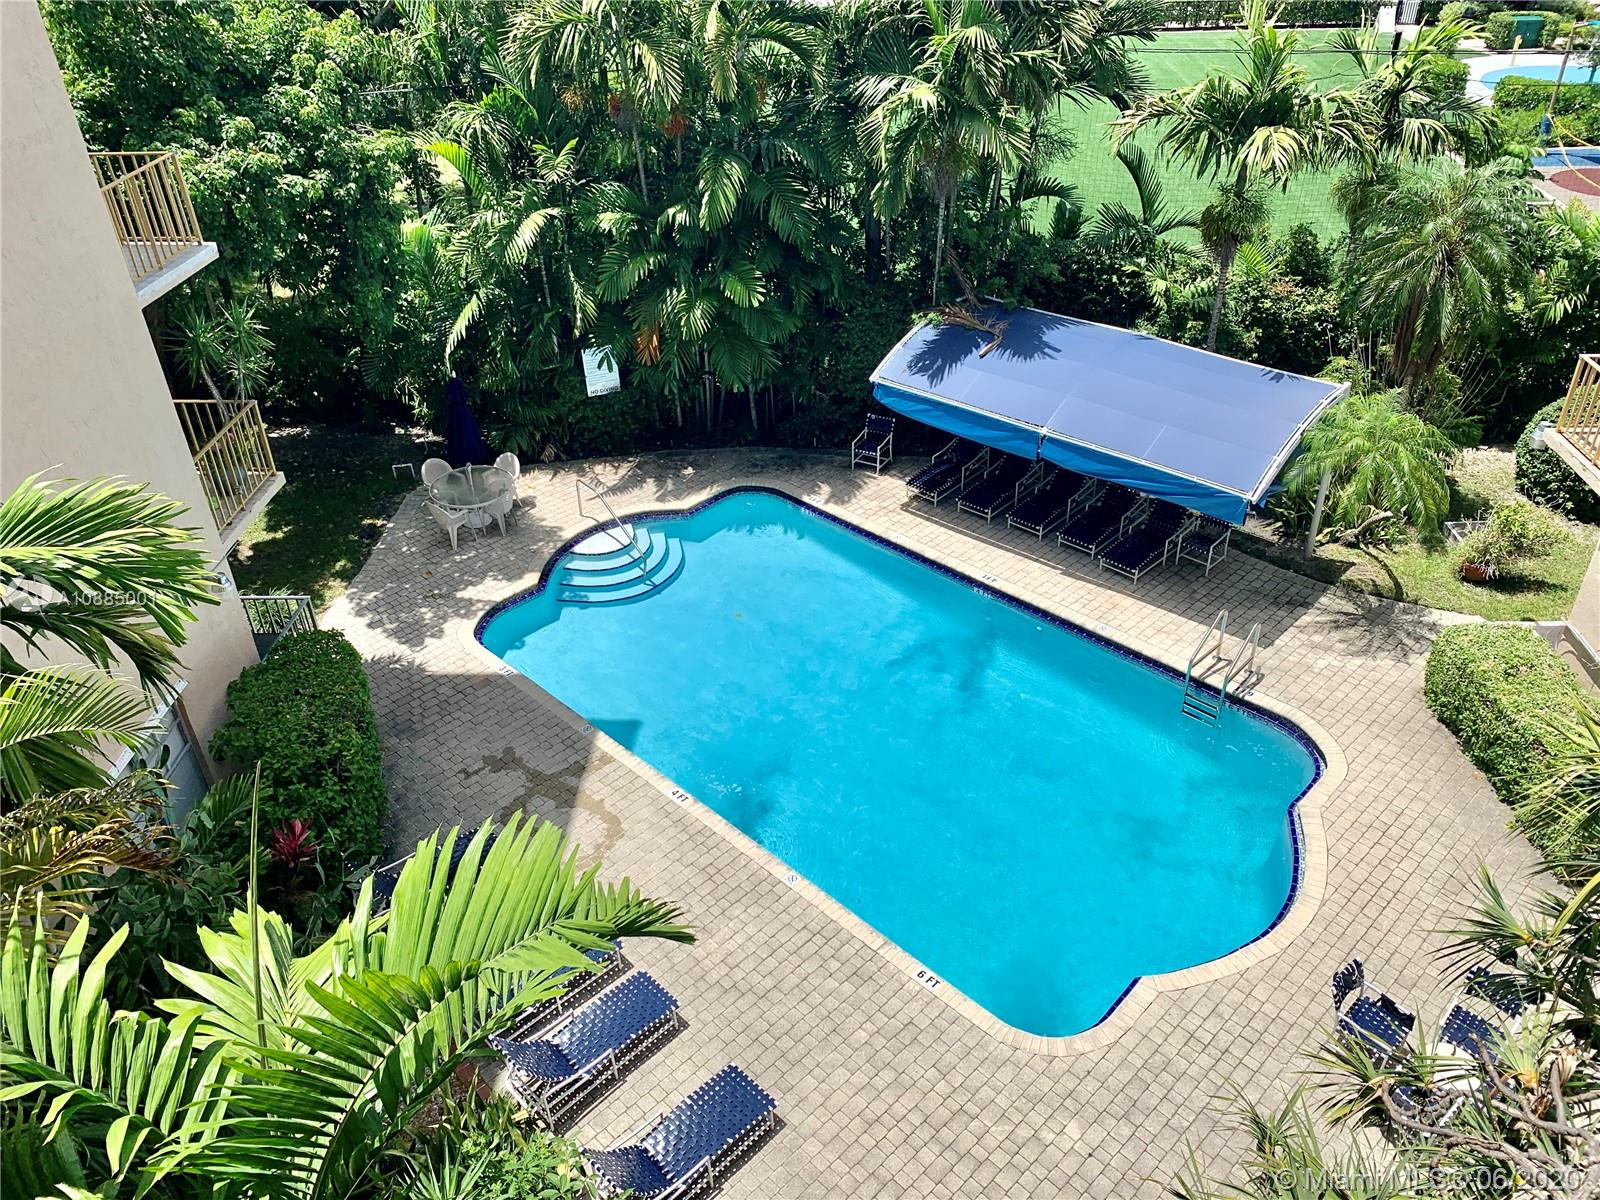 Beautiful & immaculate corner unit at The Club of Bay Harbor. The unit is a 1 bed + DEN/1.5 bath. Conveniently located on the same floor as the laundry room. Has an open balcony overlooking the gorgeous Bay Harbor Islands. Building has a pool, guest bathrooms next to the pool, BBQ area, a clubroom for residents to use, 1 assigned parking, 1 storage room, a lobby, & plenty of parking for additional cars & guests. The building has friendly neighbors & environment. Short walk to A rated schools, shopping, restaurants, & religious institutions. Highly sought after area. Currently rented at $1,450. 2 year rental restriction upon purchase but after that you can rent it once a year. Pets are welcome.